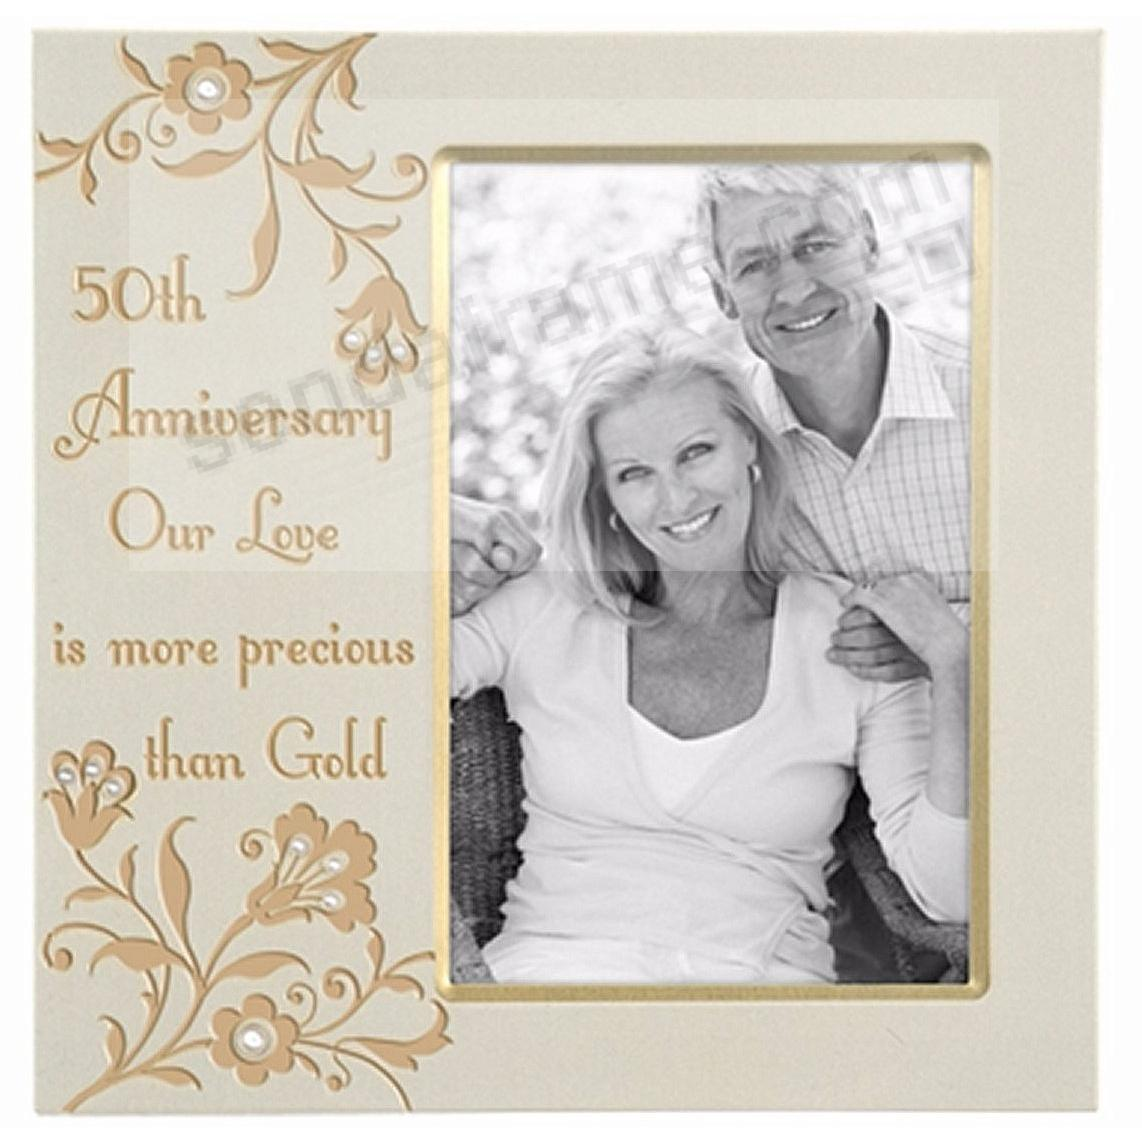 50th anniversary 2 tone gold with jewels by malden picture frames